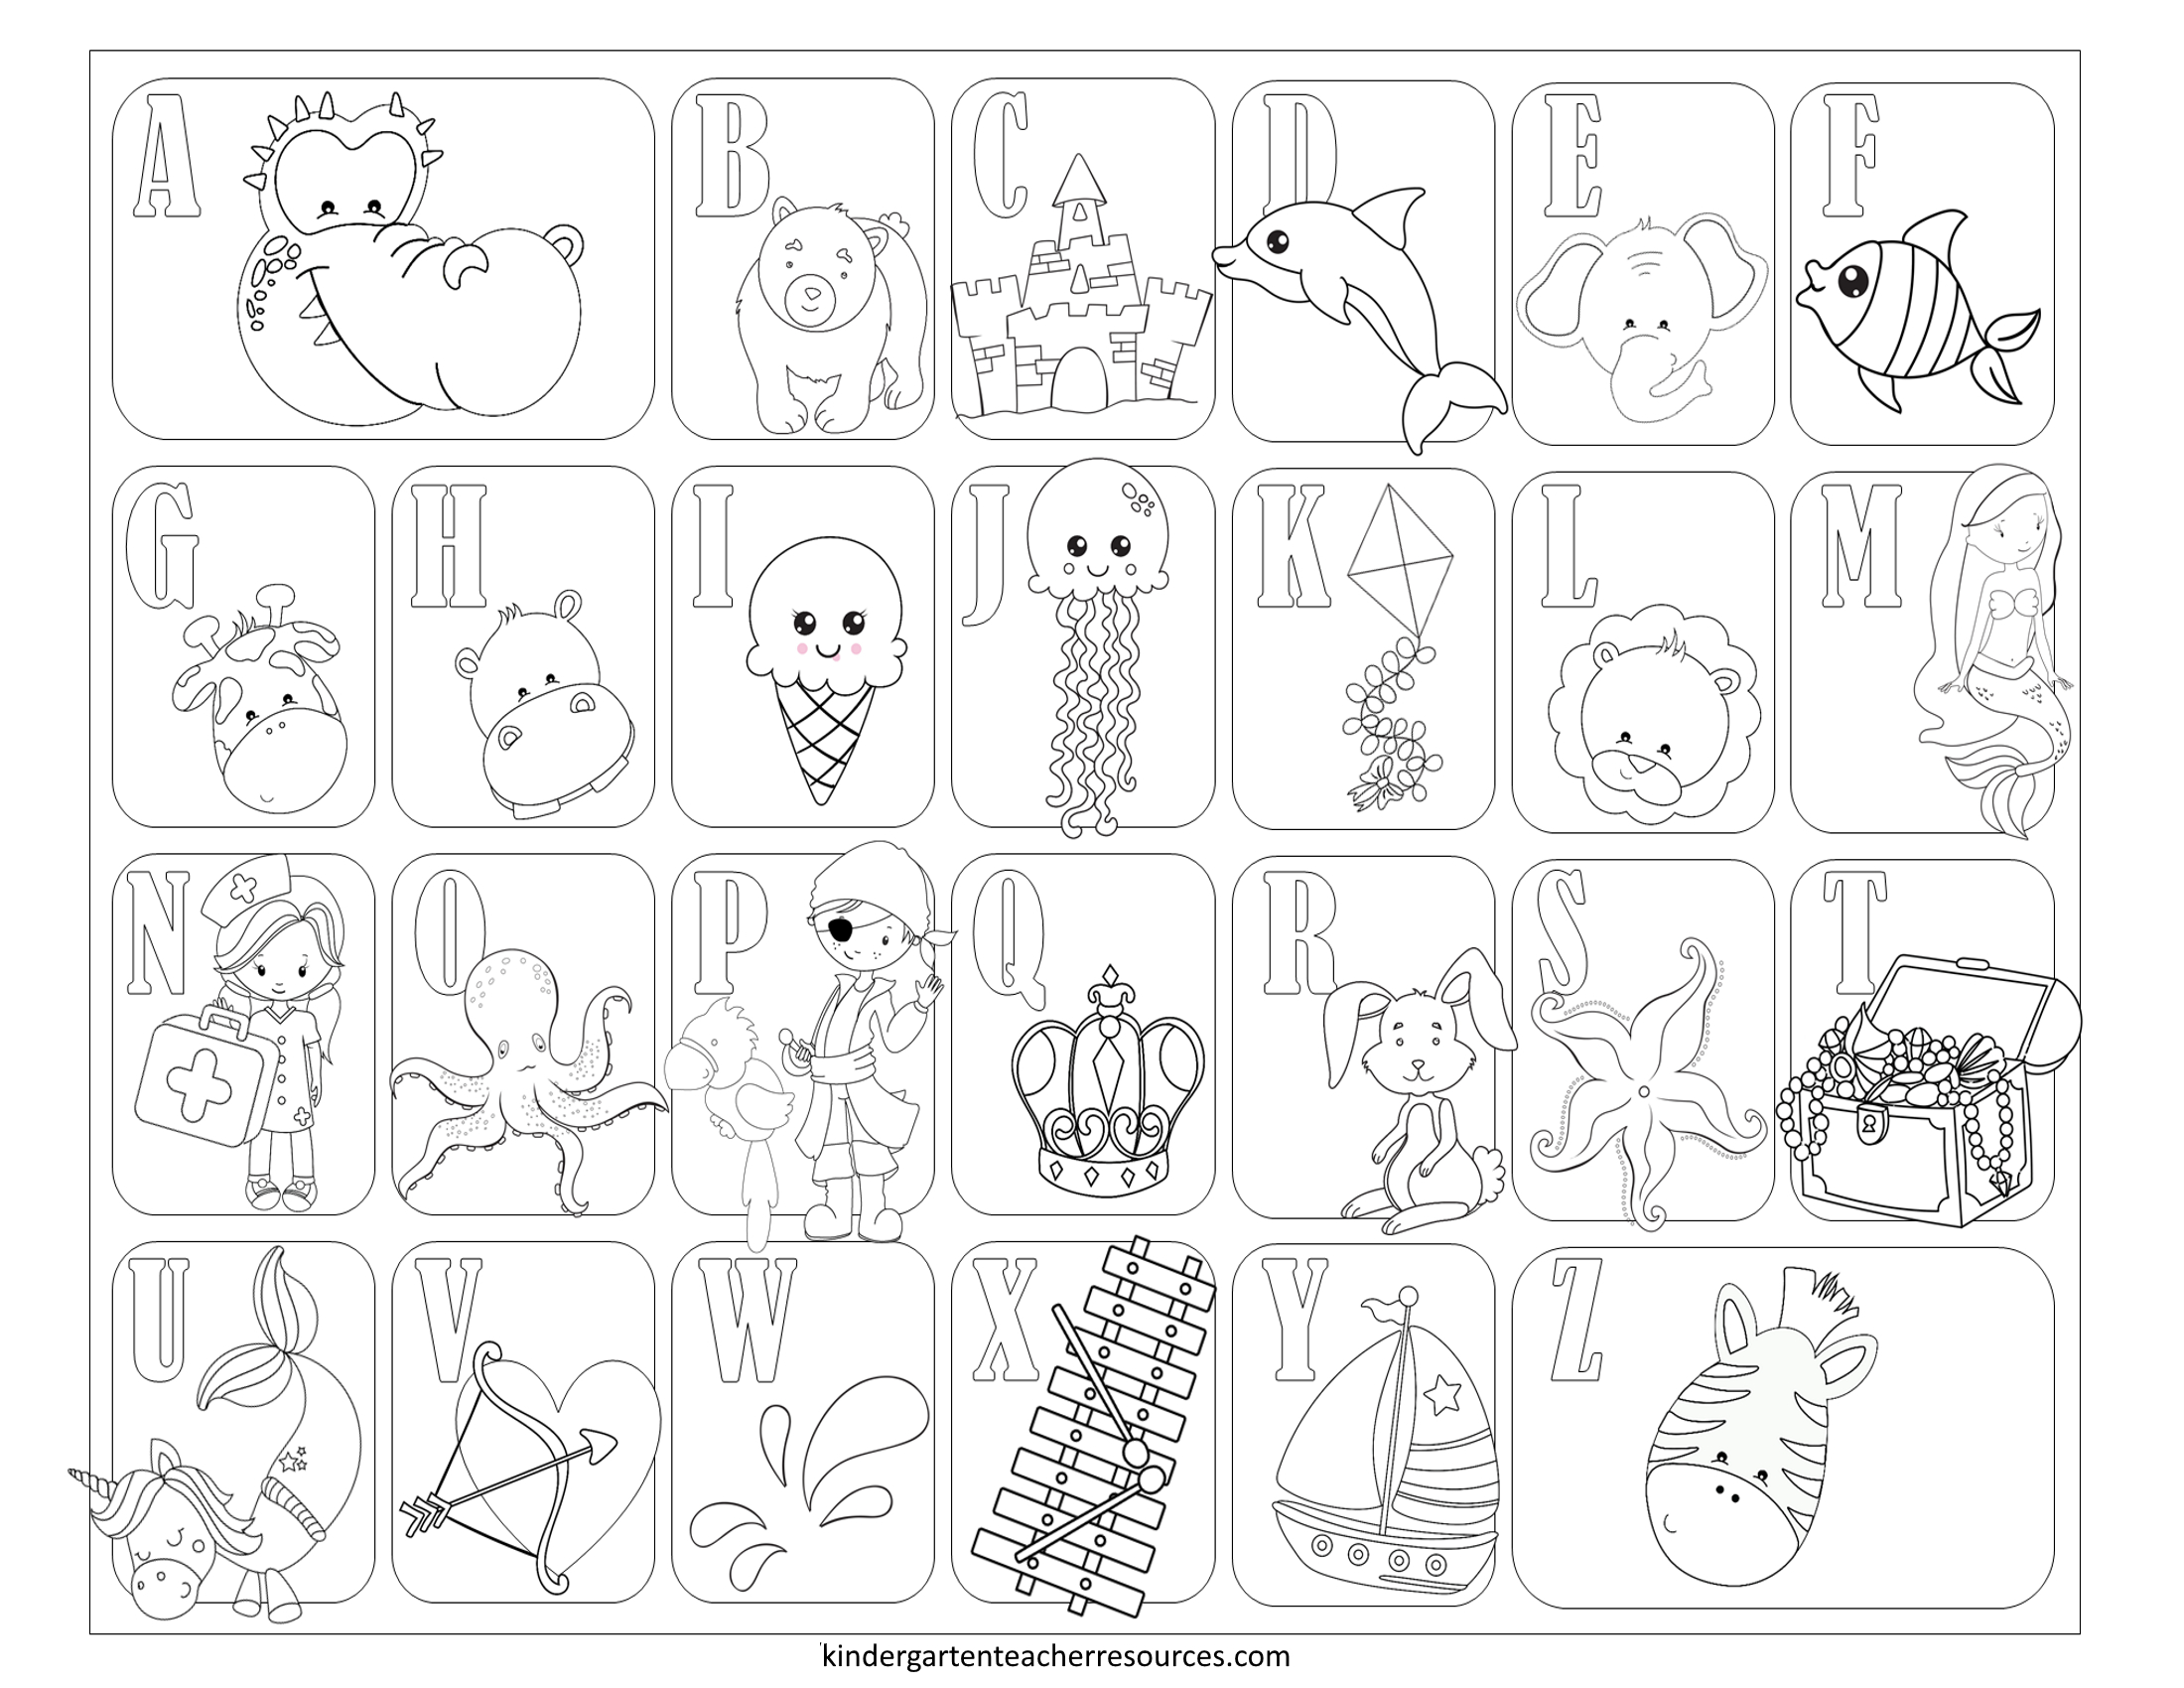 Free Printable Coloring Pages For Kindergarten in Alphabet Coloring Worksheets For Kindergarten